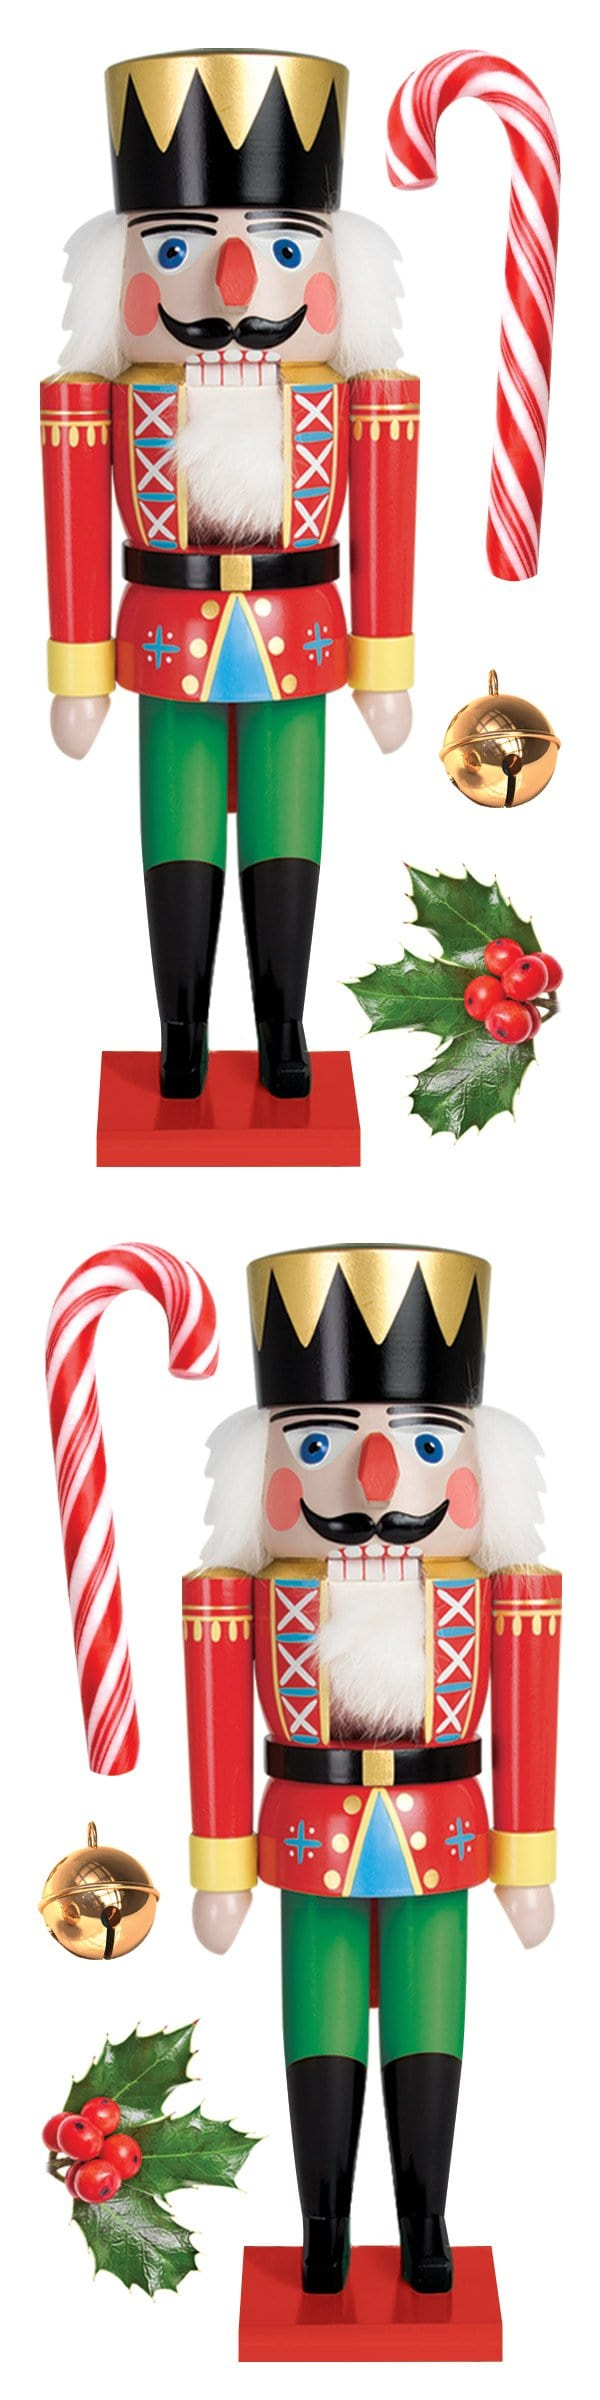 Nutcracker and Candy Cane 3D Sticker Embellishments